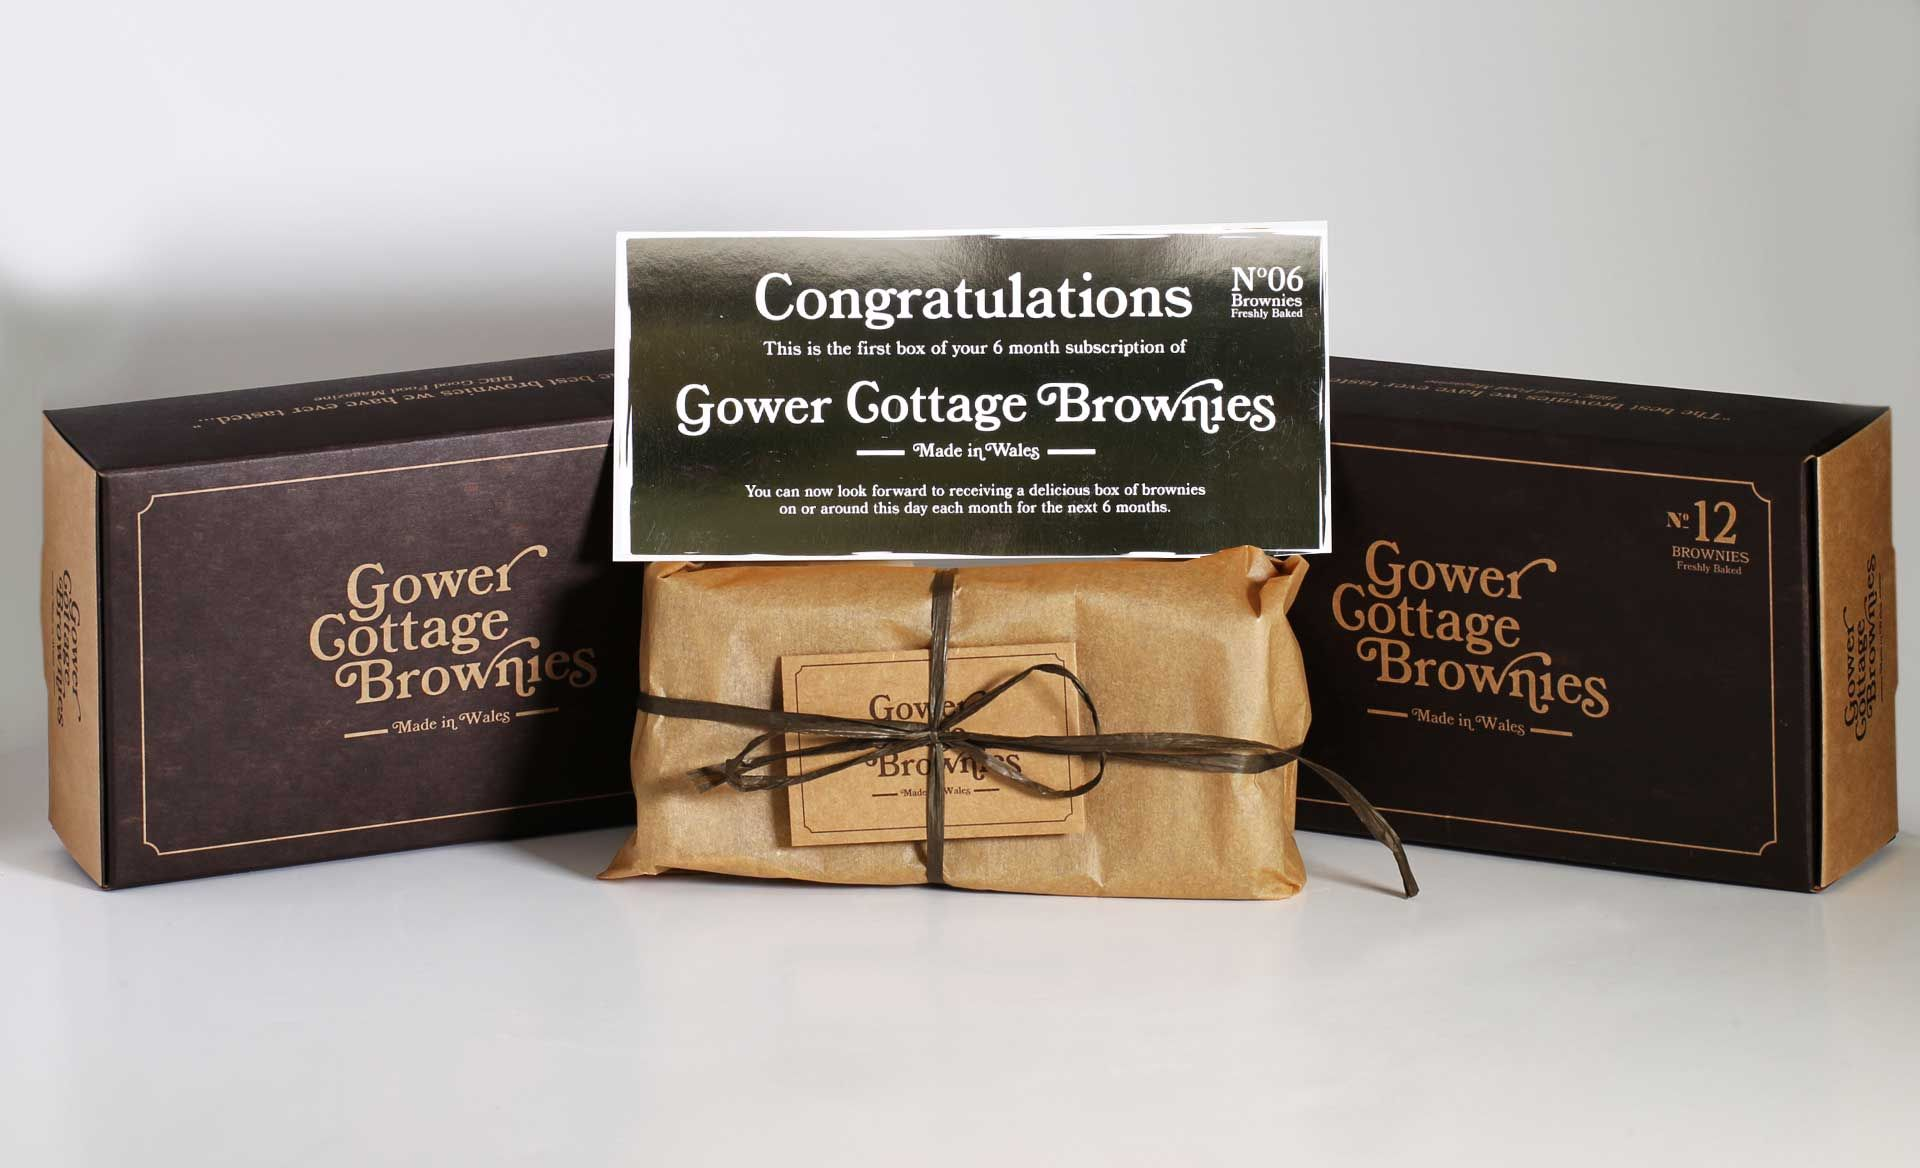 Gower Cottage Brownies (6 Month Subscription)